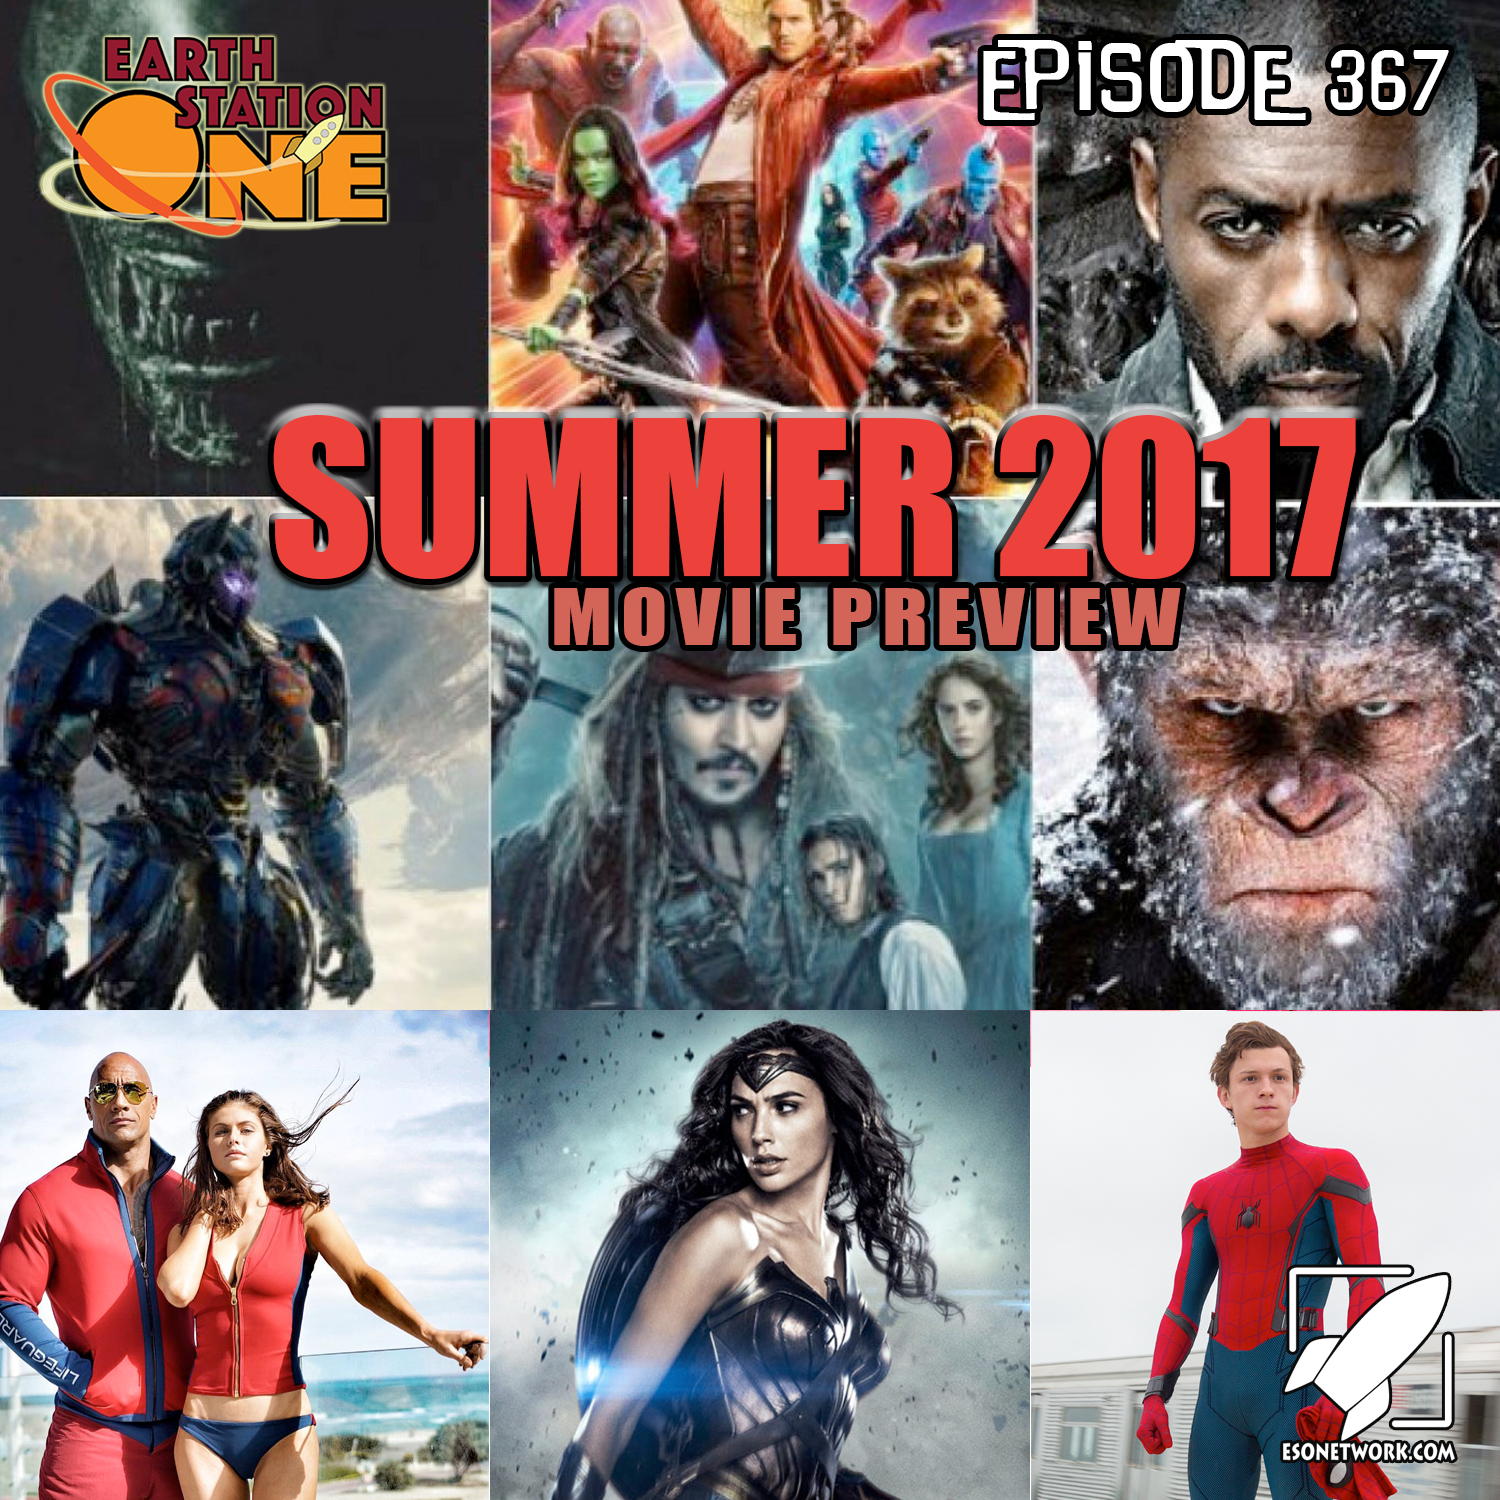 Earth Station One Podcast Ep 367